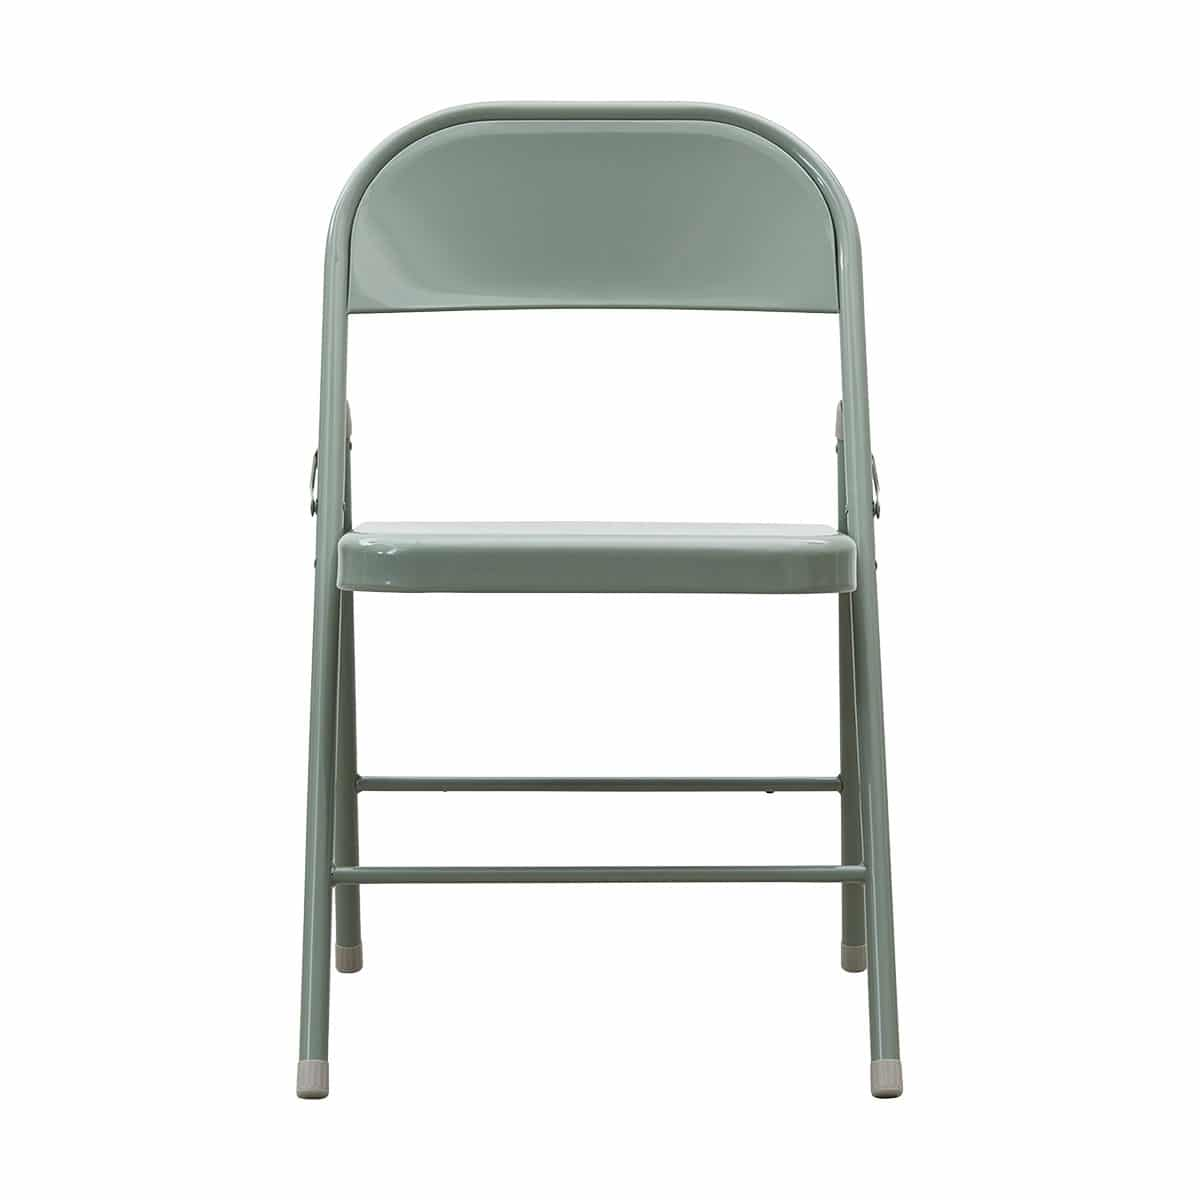 Fold Out Chair Army Green